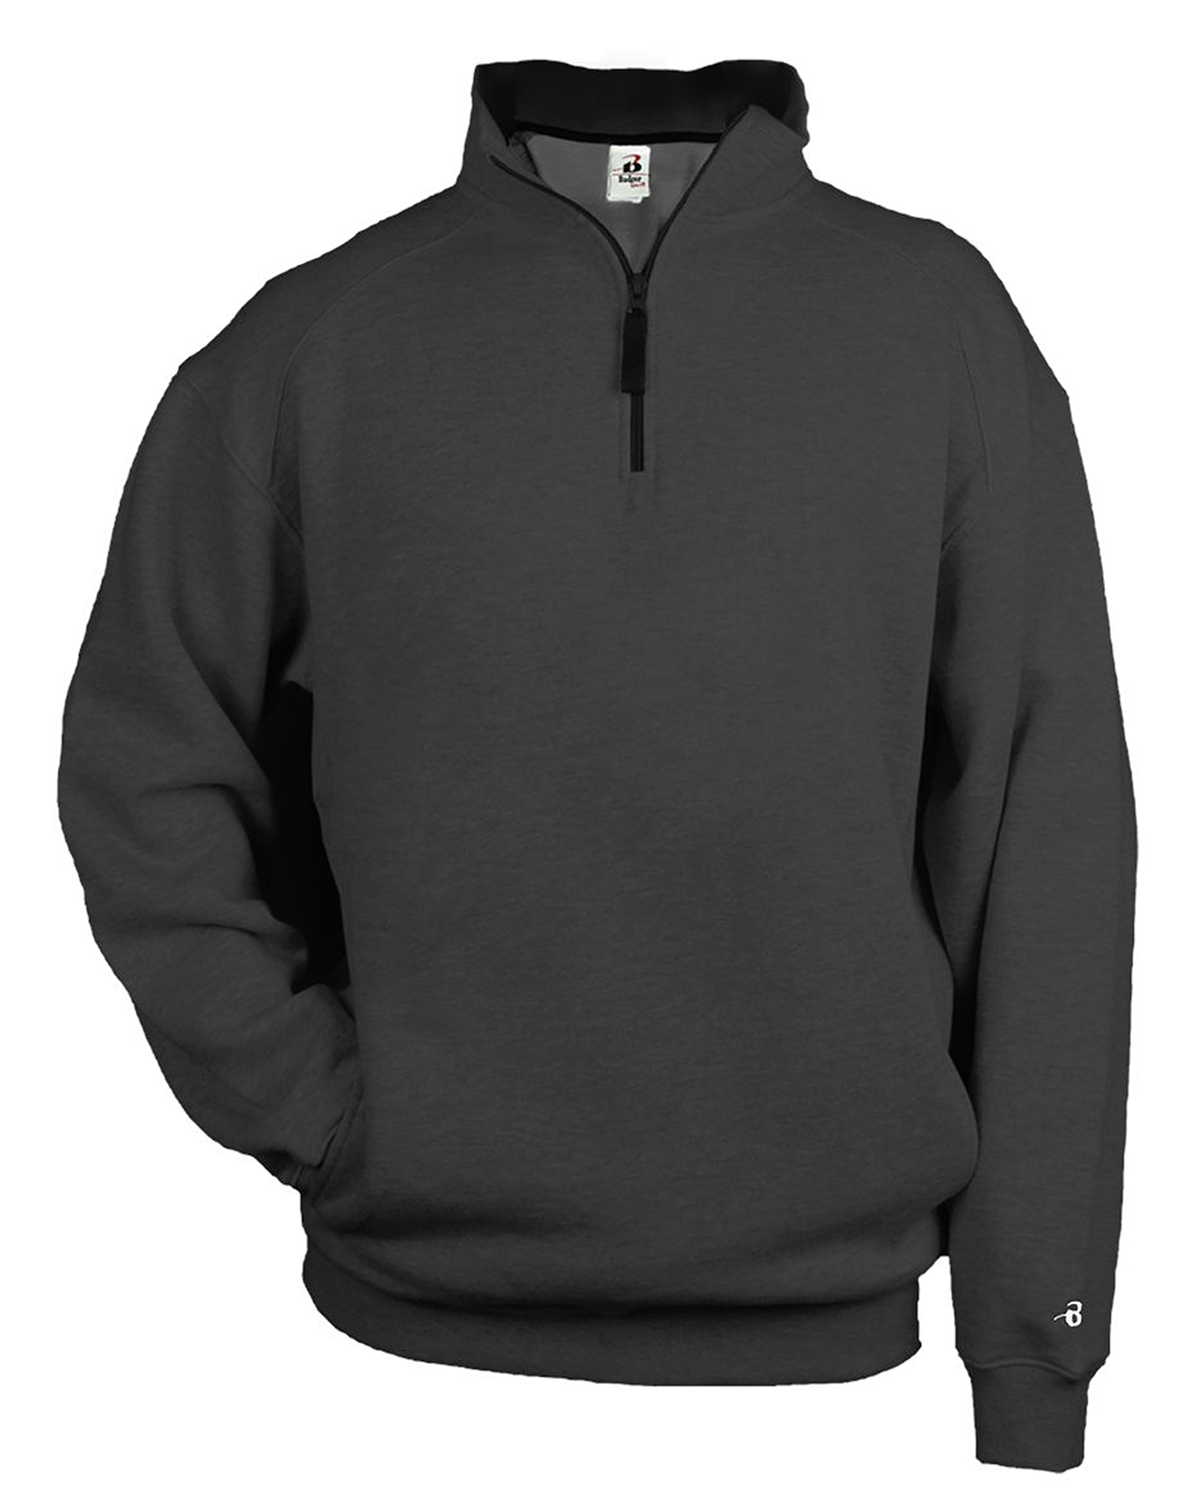 Badger Sport BD1286 - Quarter Zip Fleece Pullover